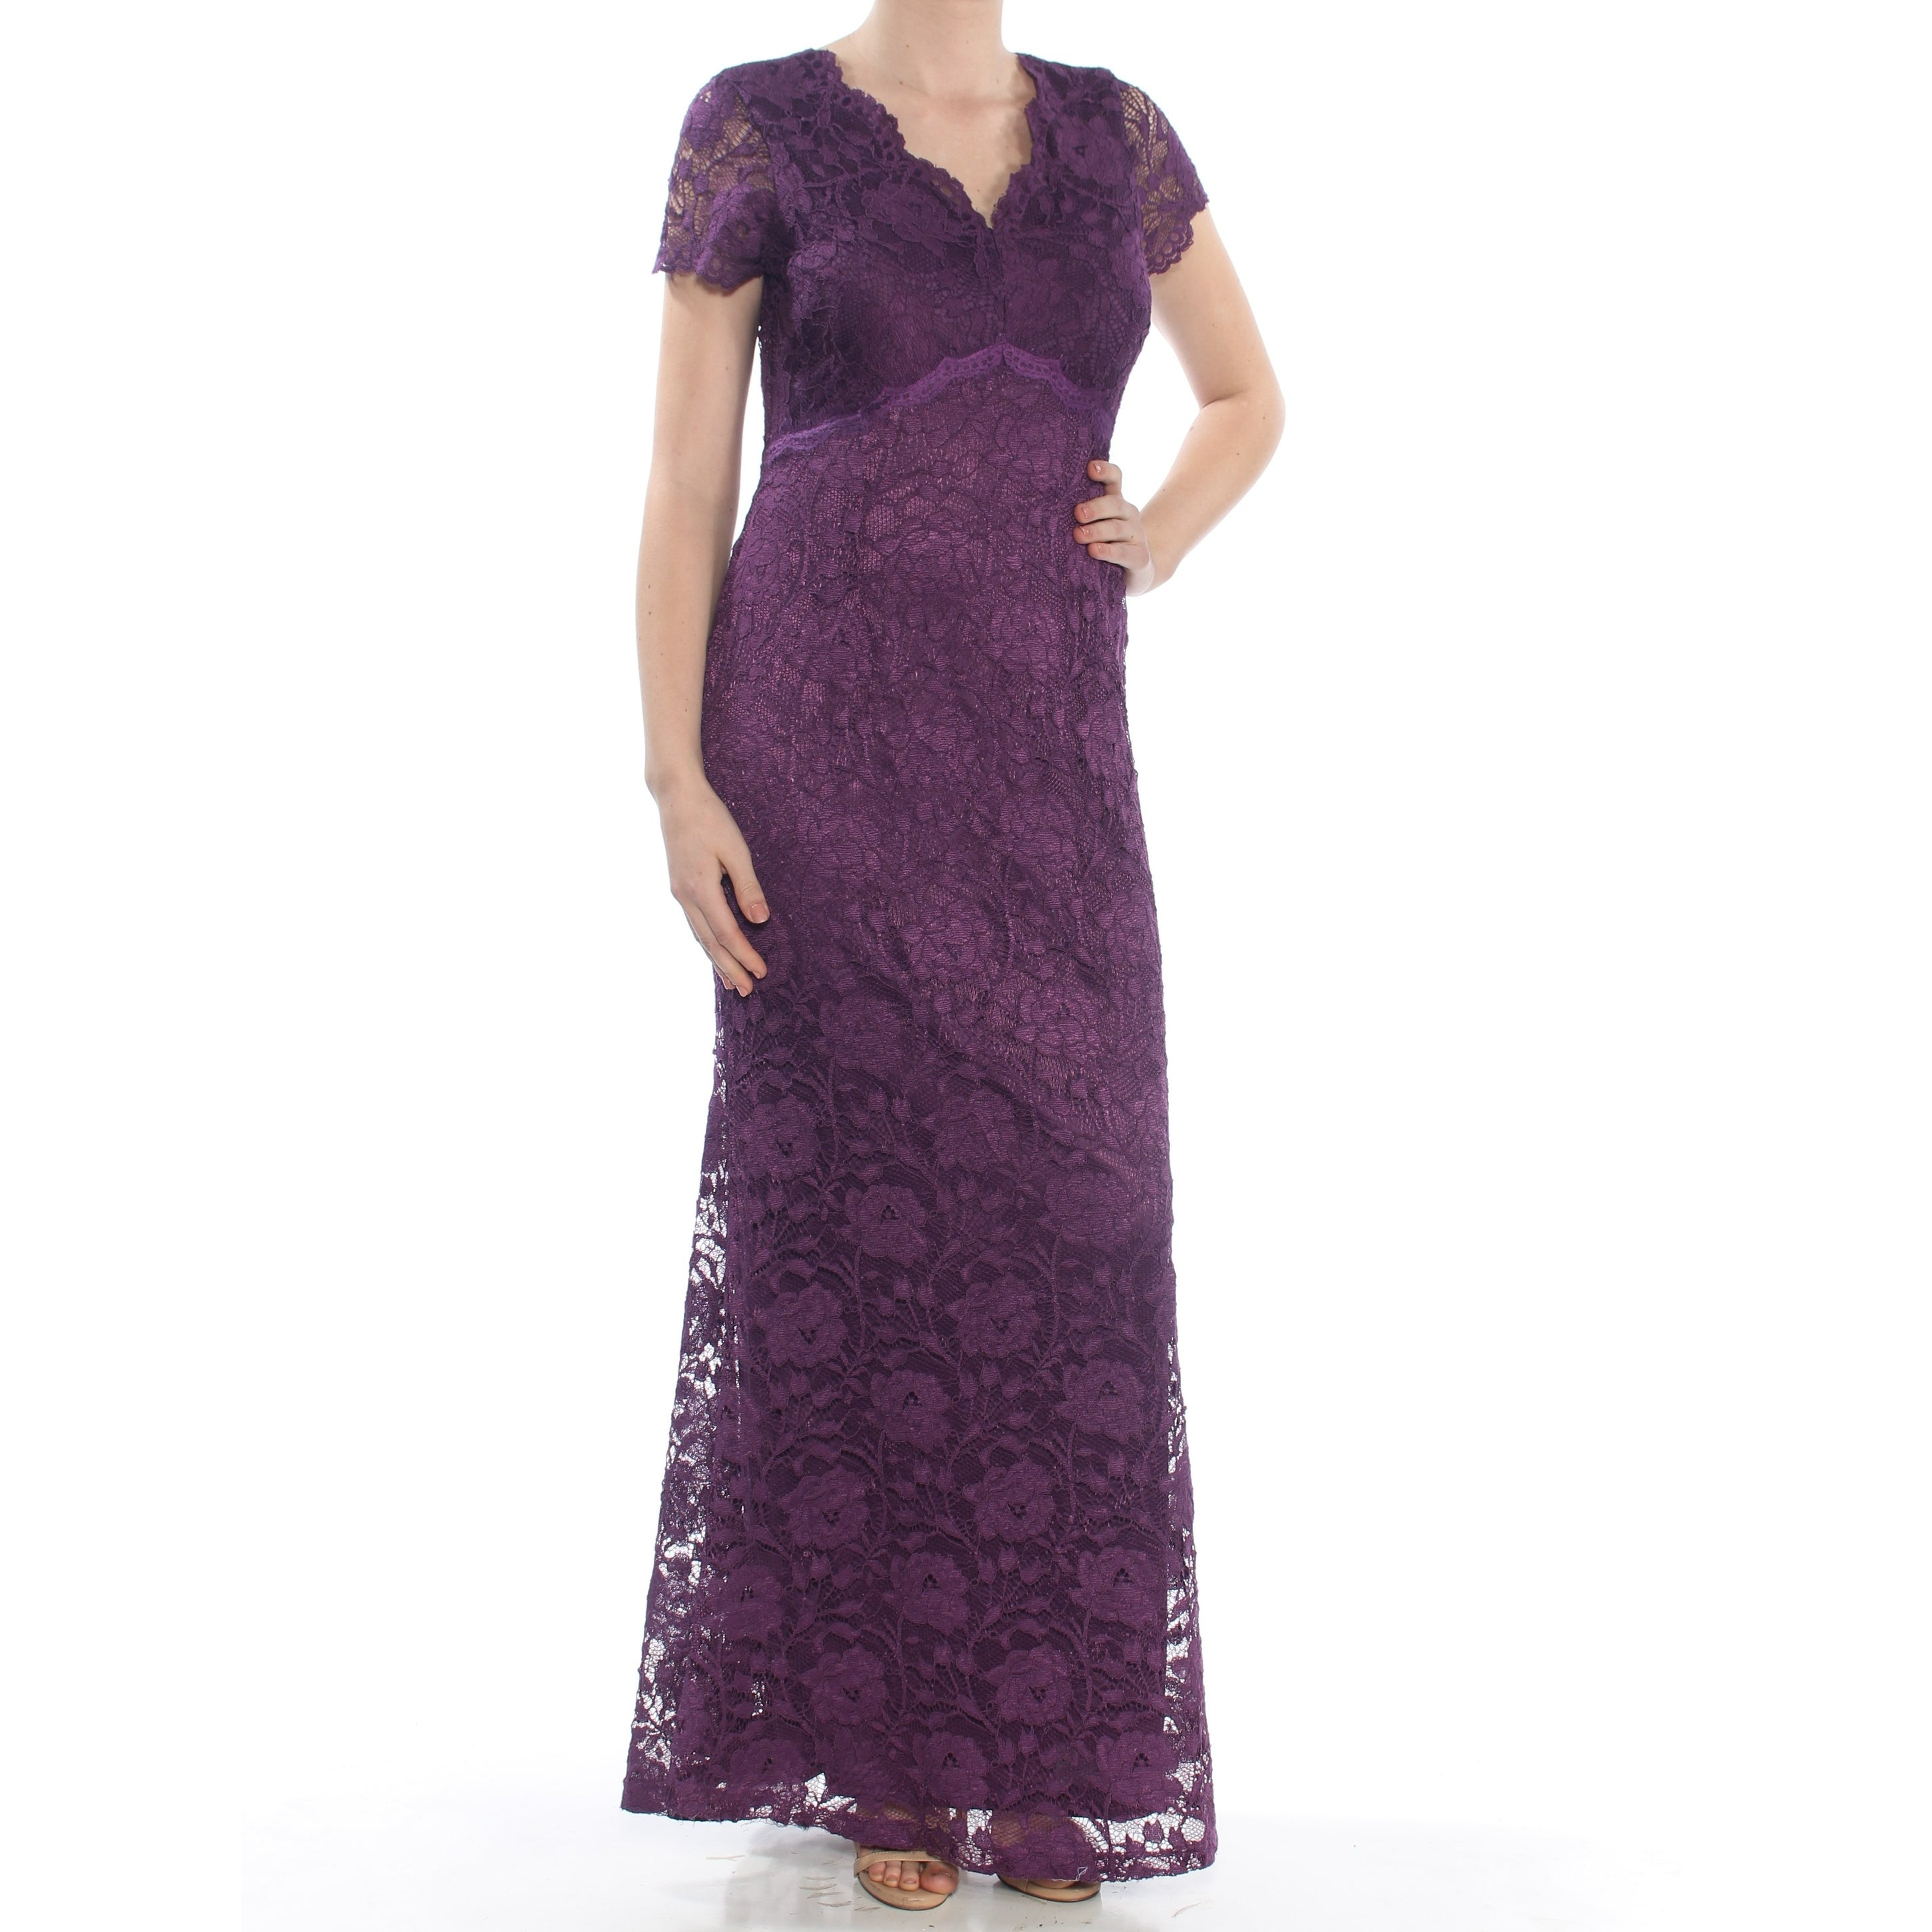 de8bac18 Ellen Tracy Dresses | Find Great Women's Clothing Deals Shopping at  Overstock